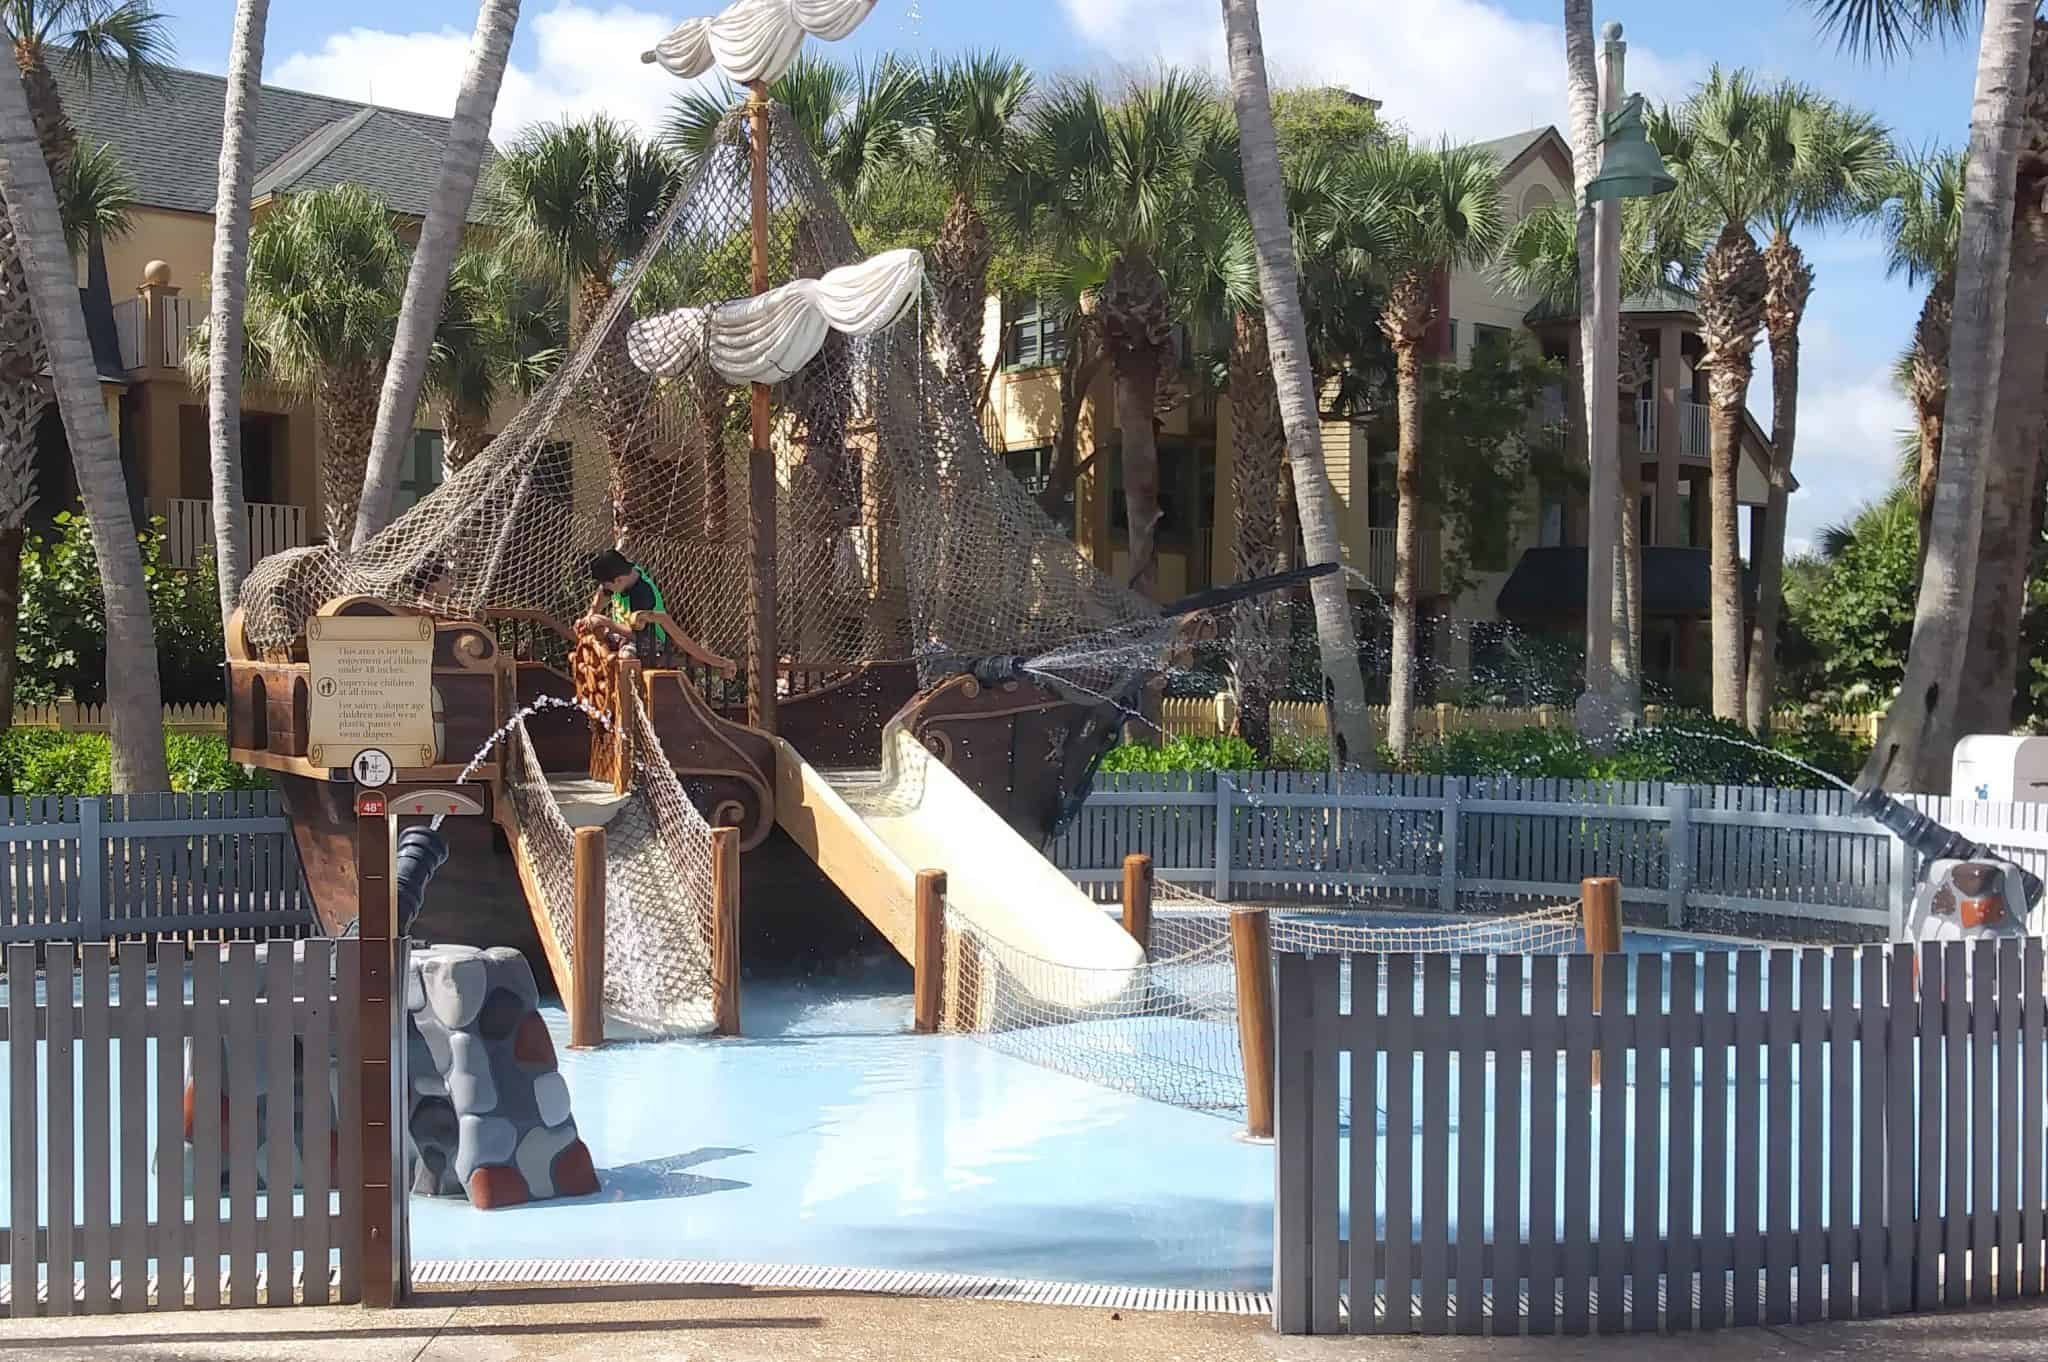 Disney's Vero Beach Resort - Pirate Ship